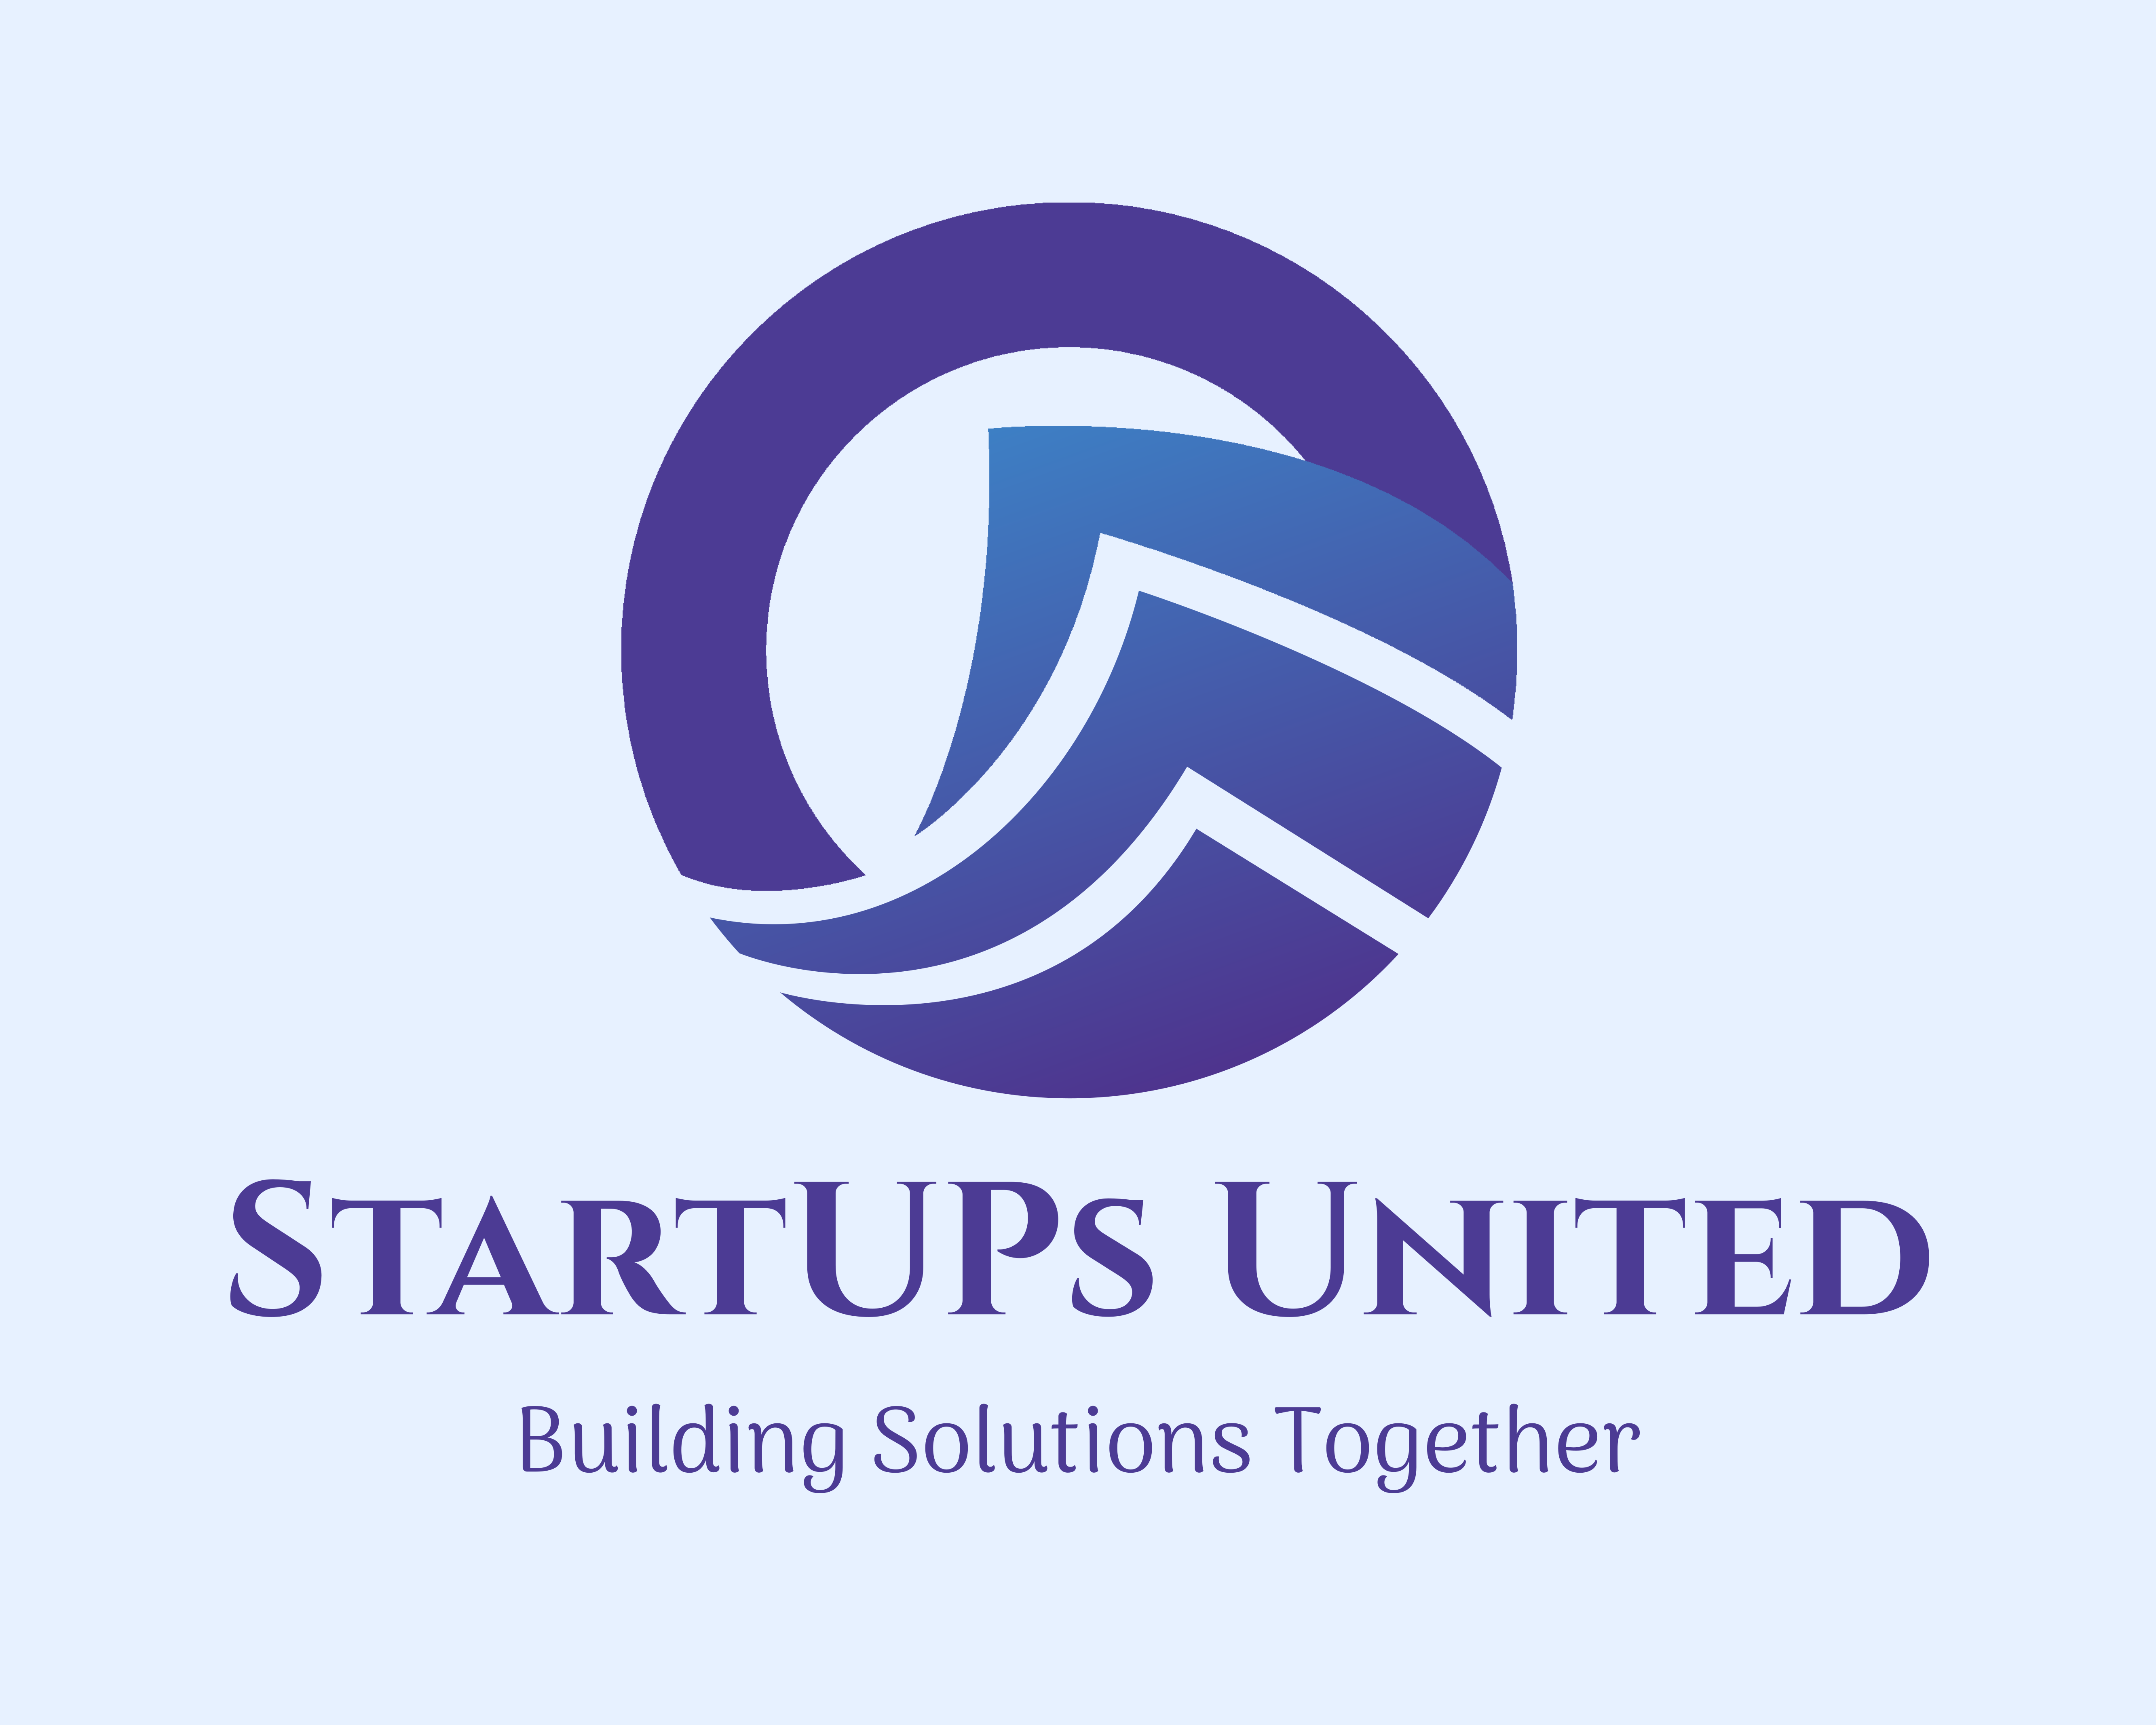 StartUPs United Foundation Brand